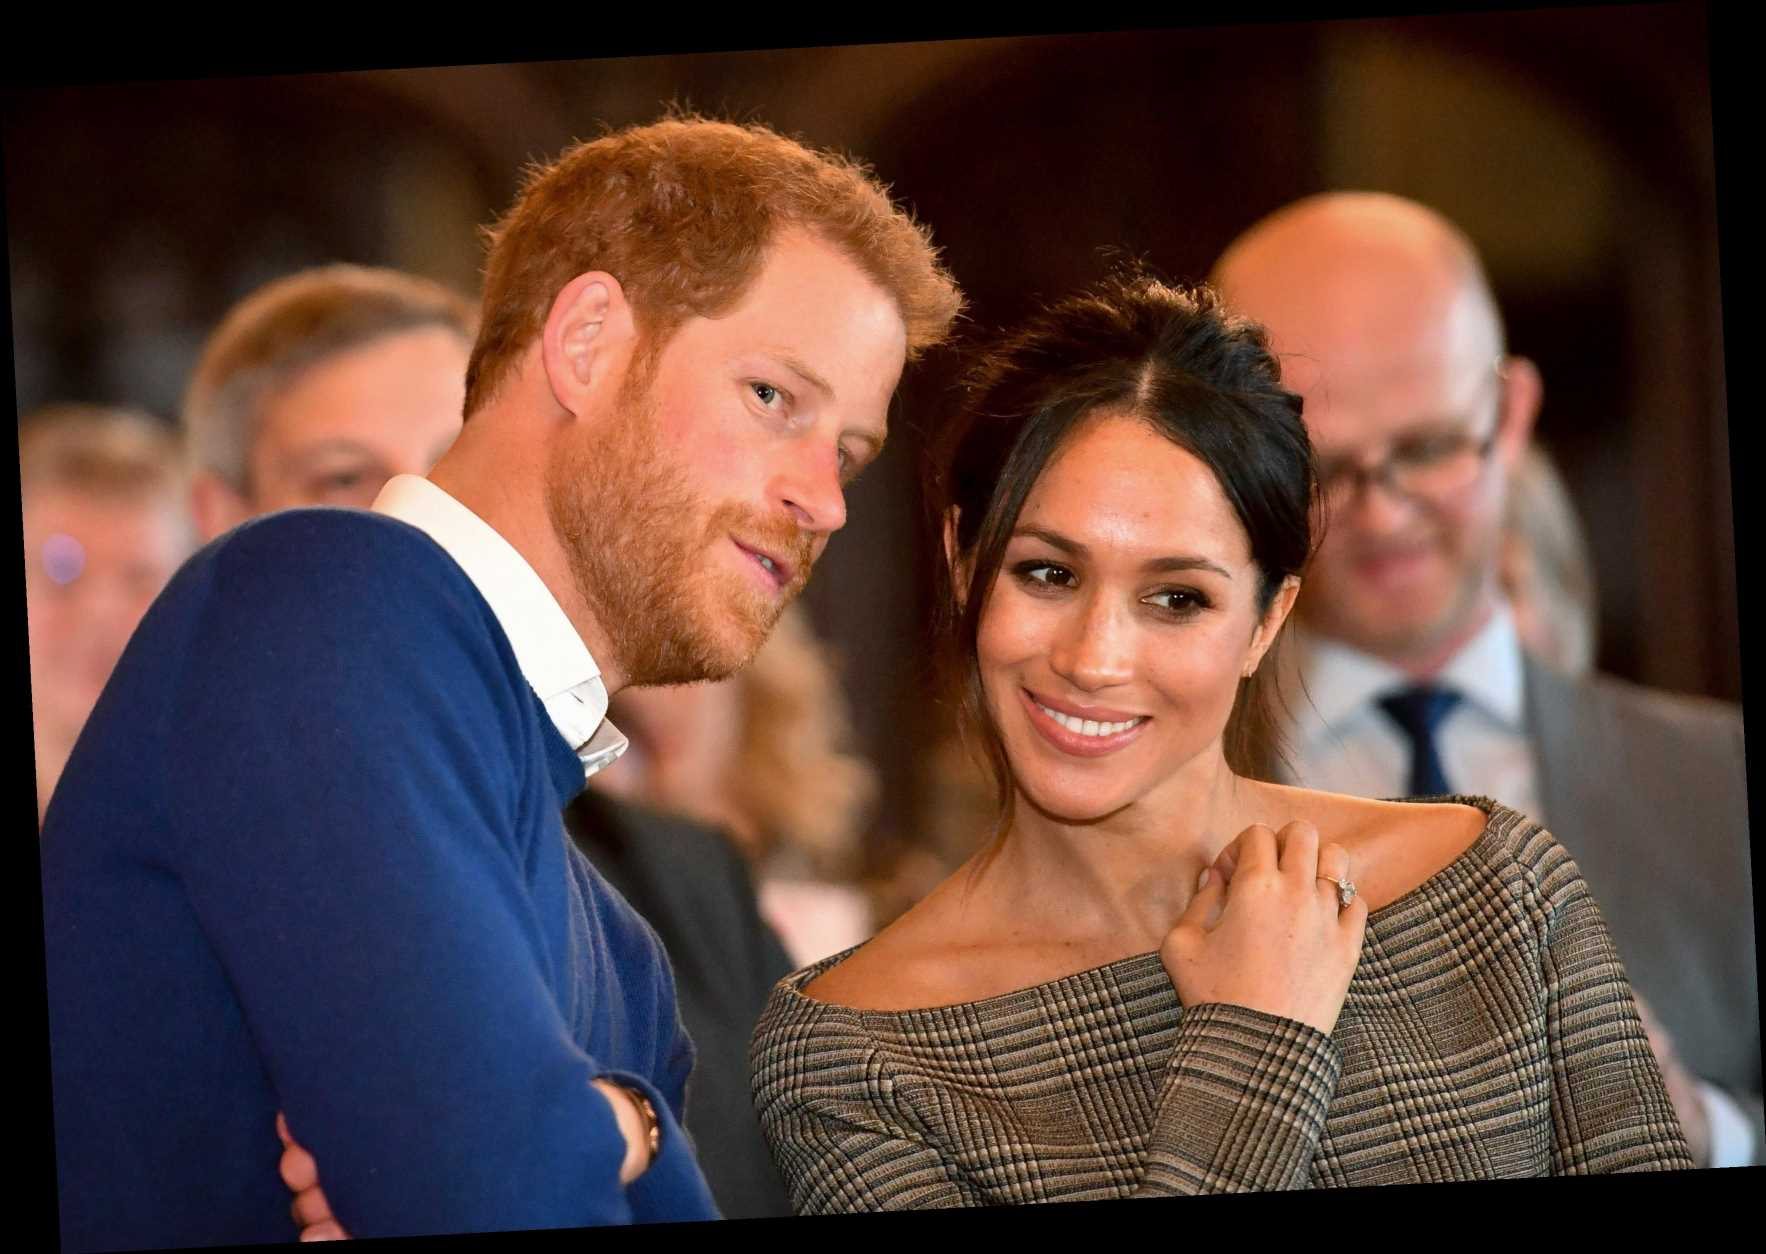 Meghan Markle and Prince Harry told the Queen baby news privately but Palace 'caught off guard with public announcement'